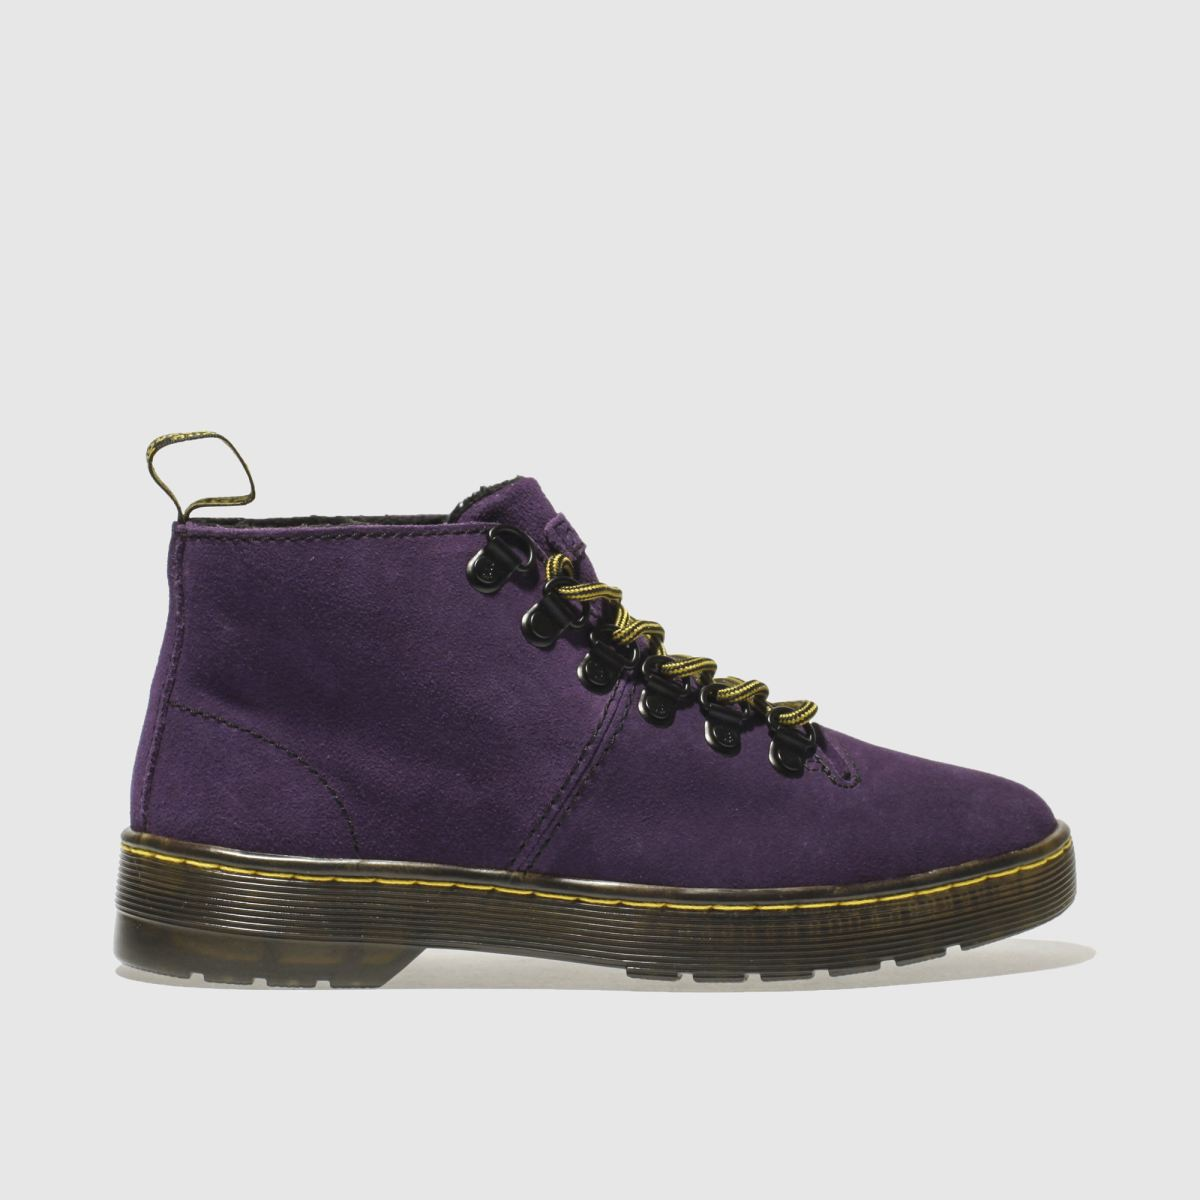 dr martens purple lahava 6 eye lined chukka boots